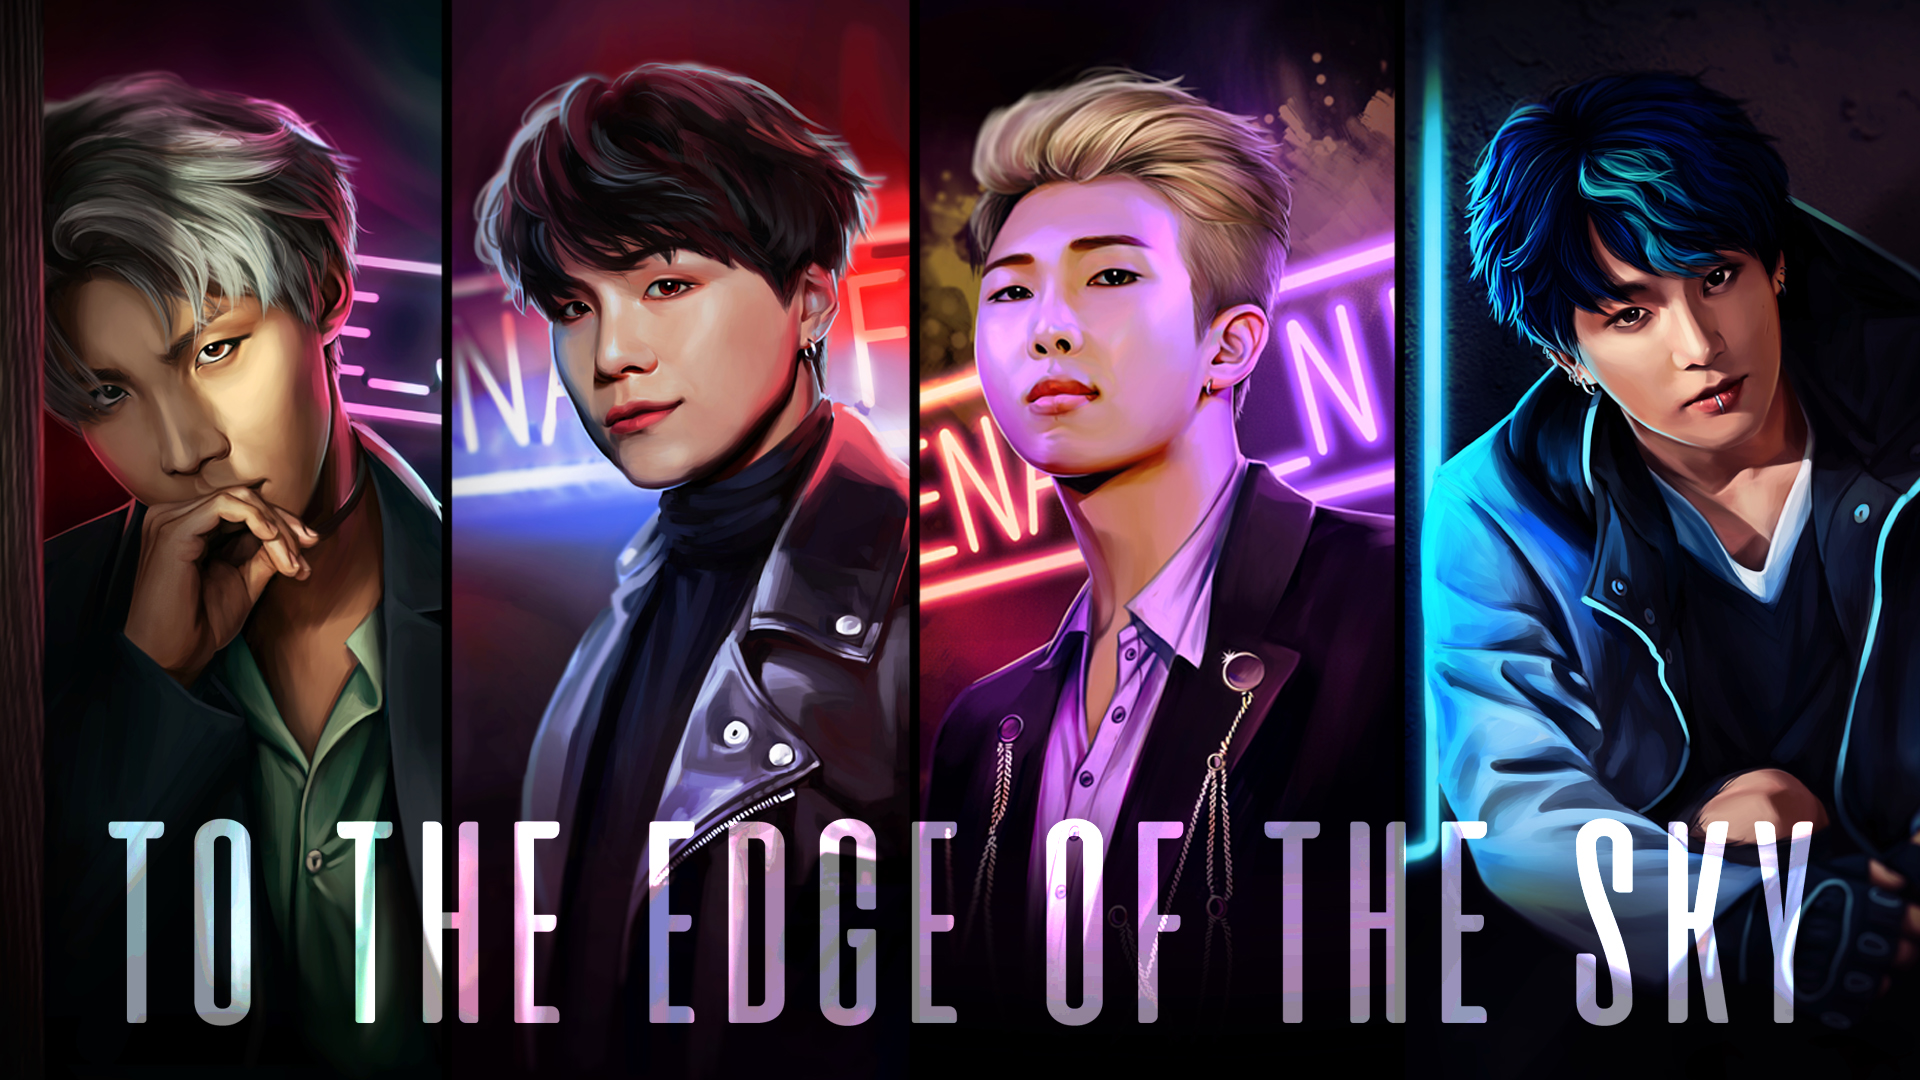 Minor Update To The Edge Of The Sky By Aeon Dream Studios